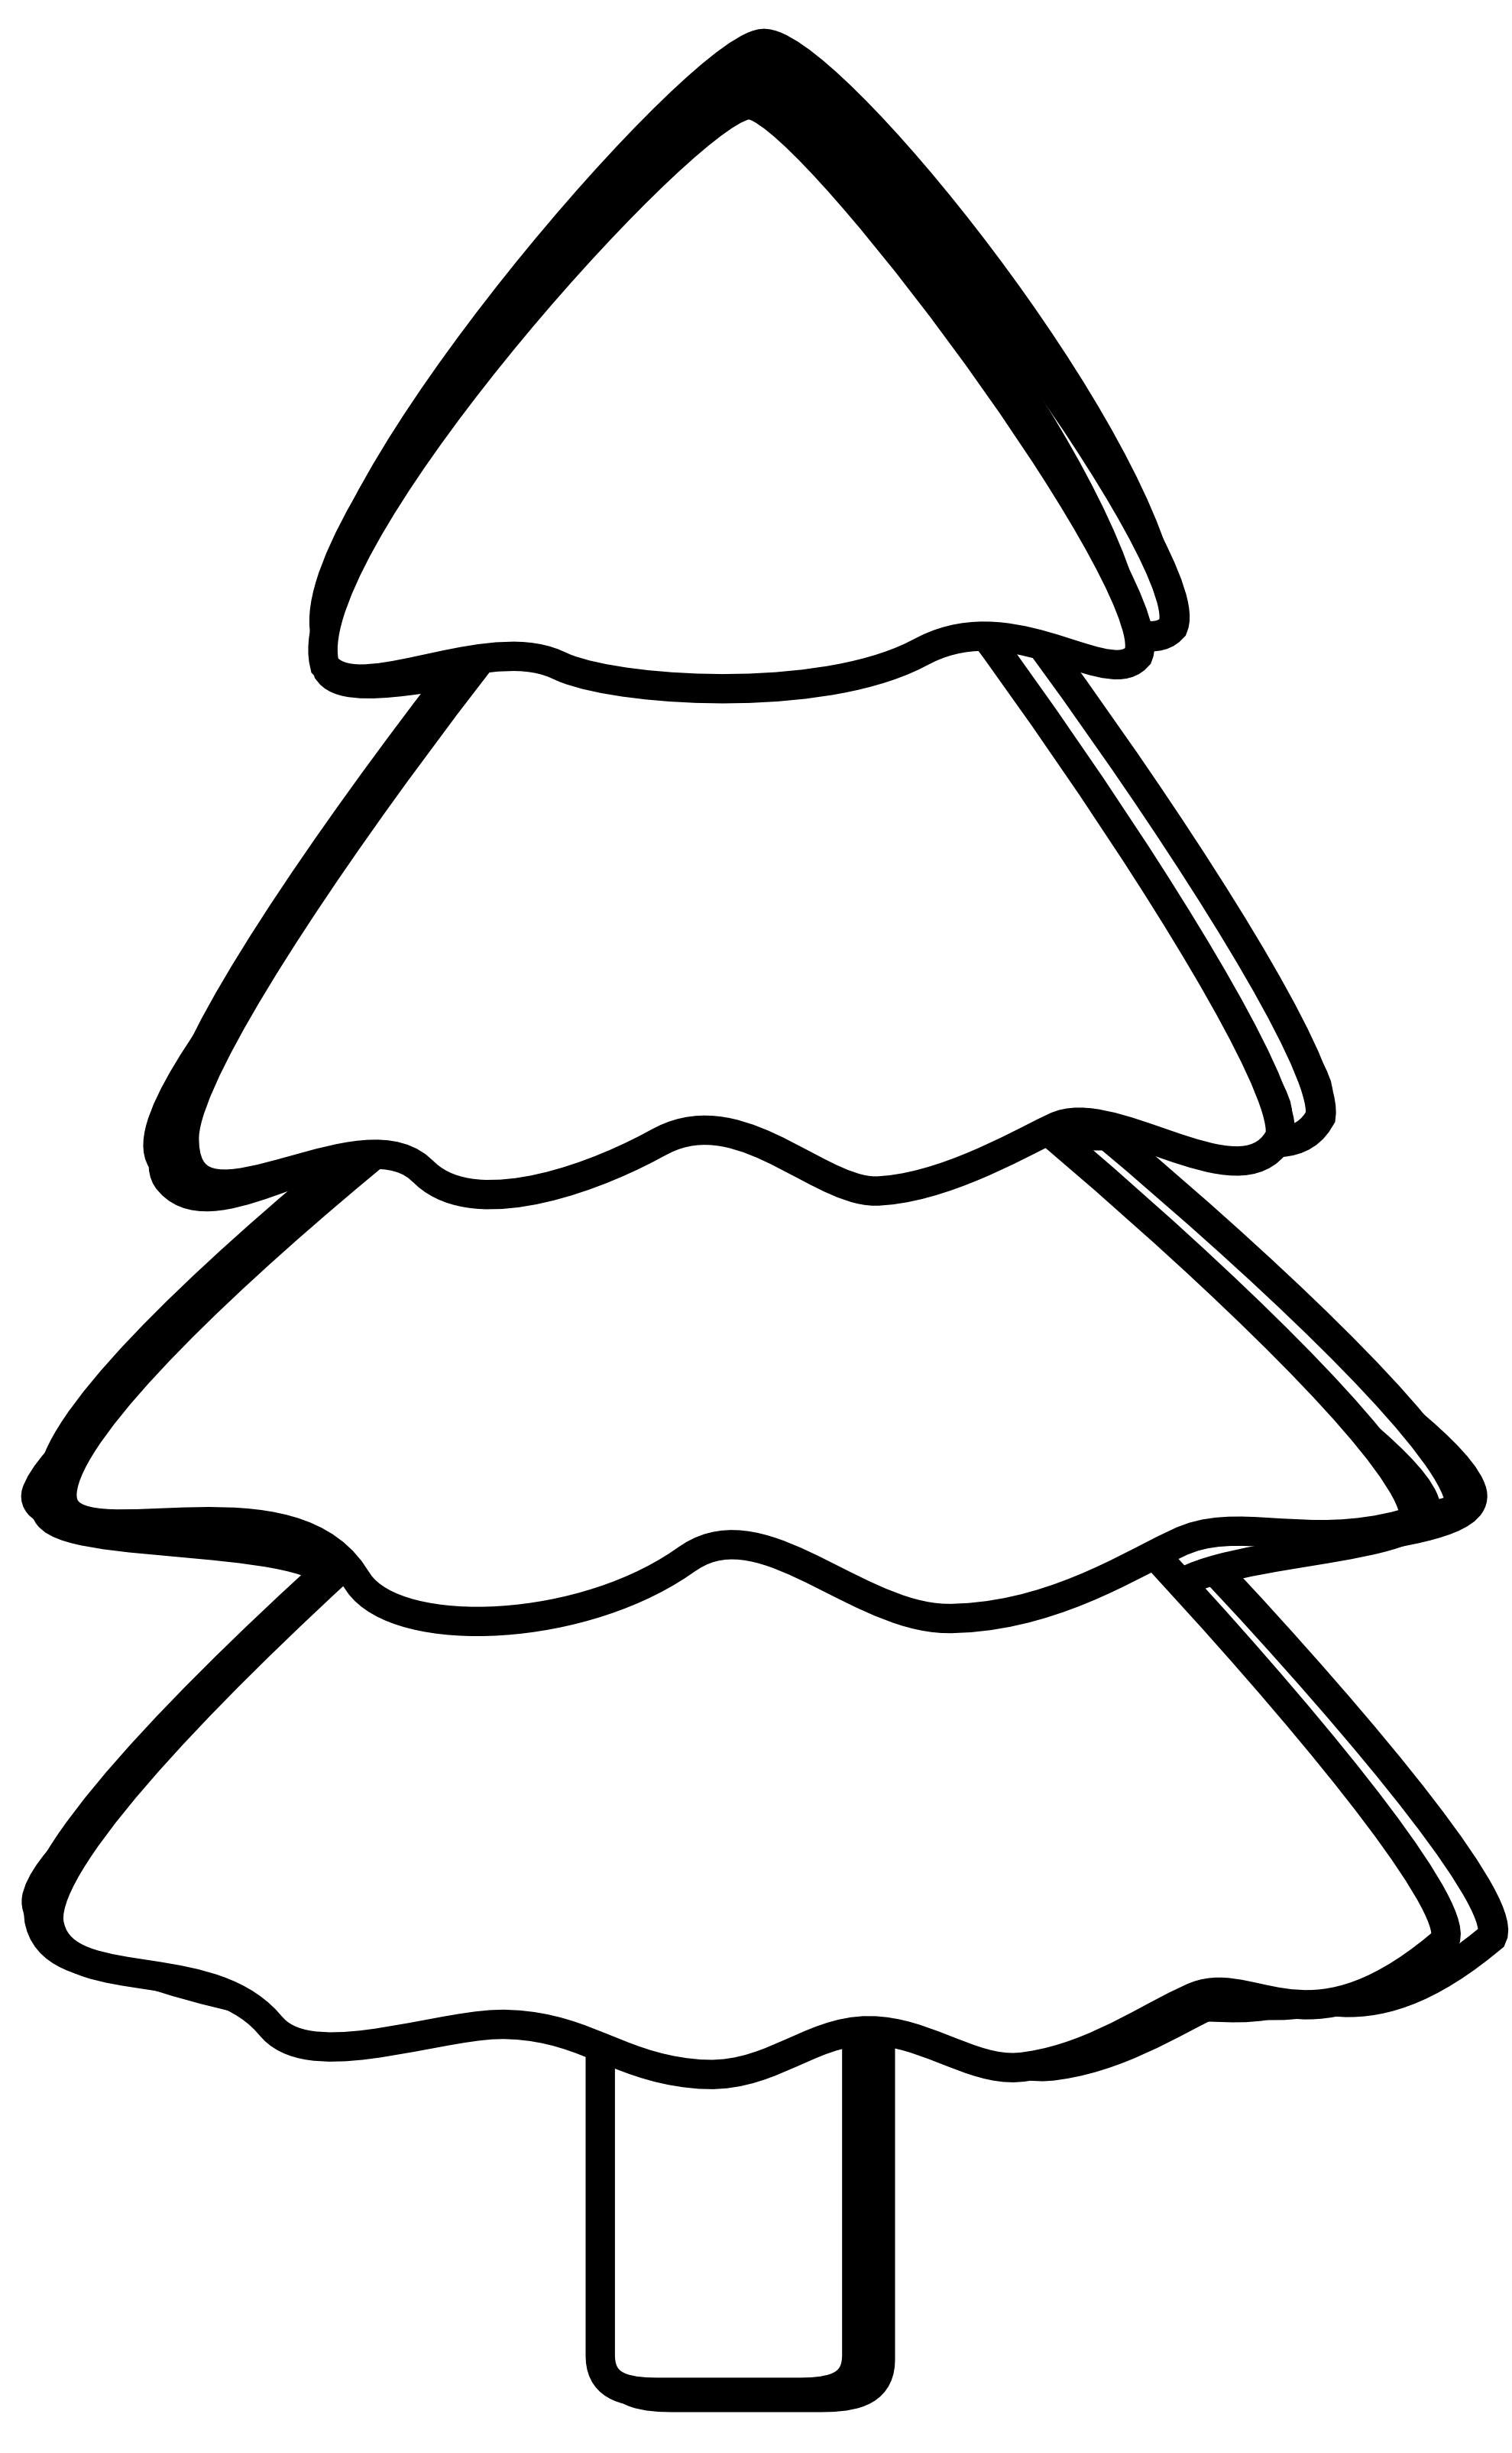 Christmas Tree Clipart Black And White | Clipart Panda ...